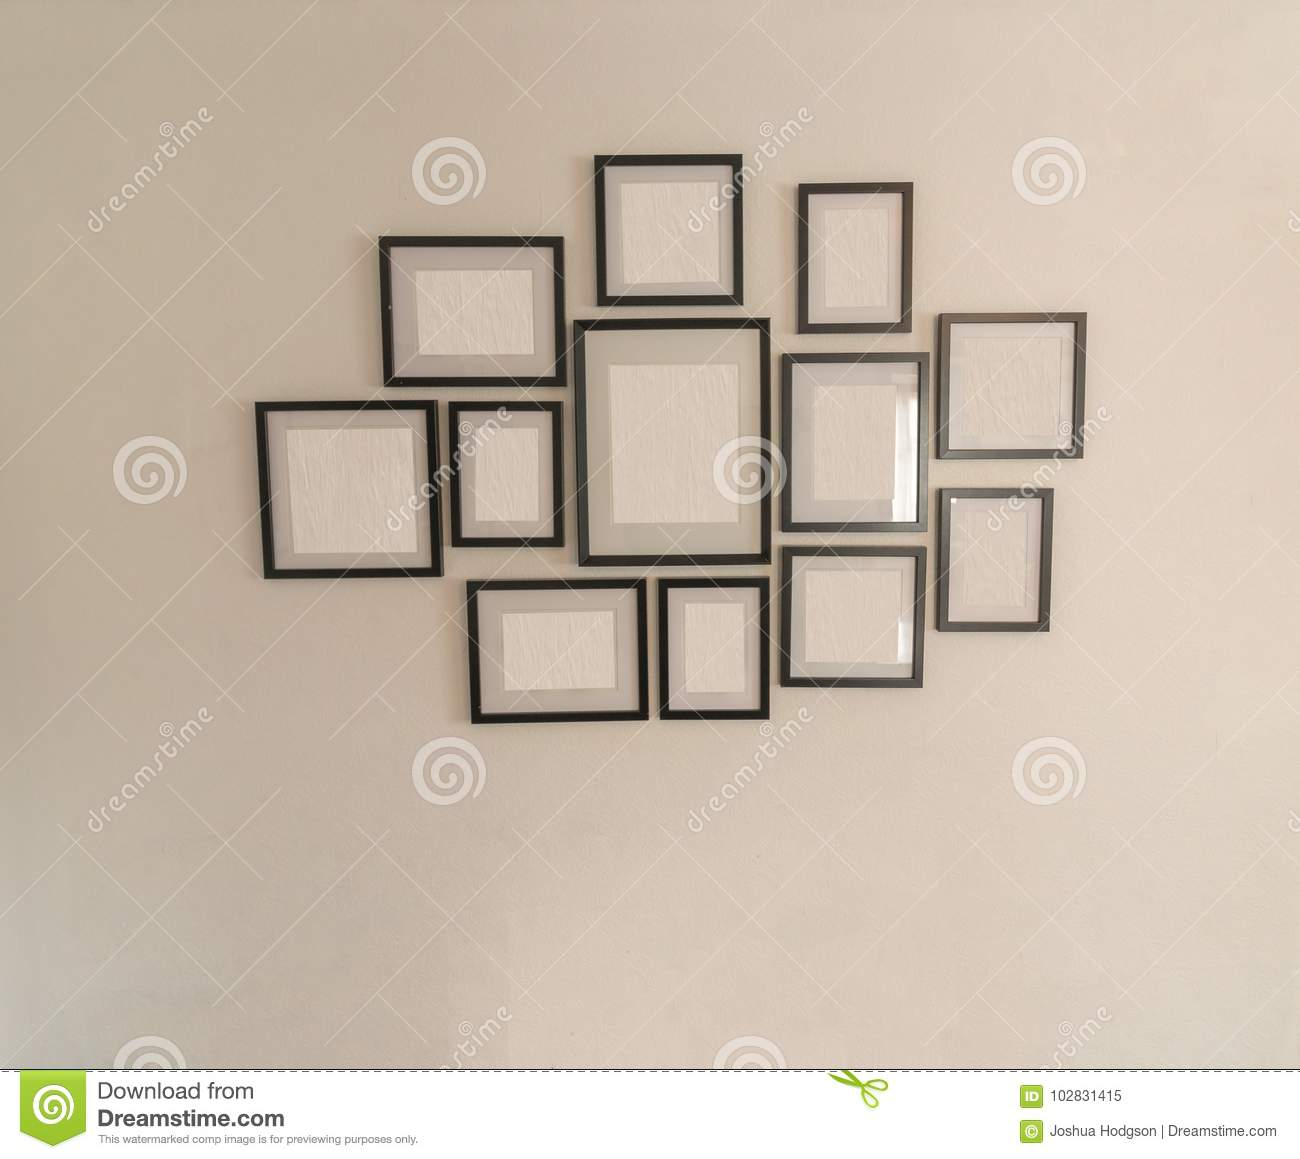 Empty Picture Frames On White Wall Stock Image - Image of clipping ...